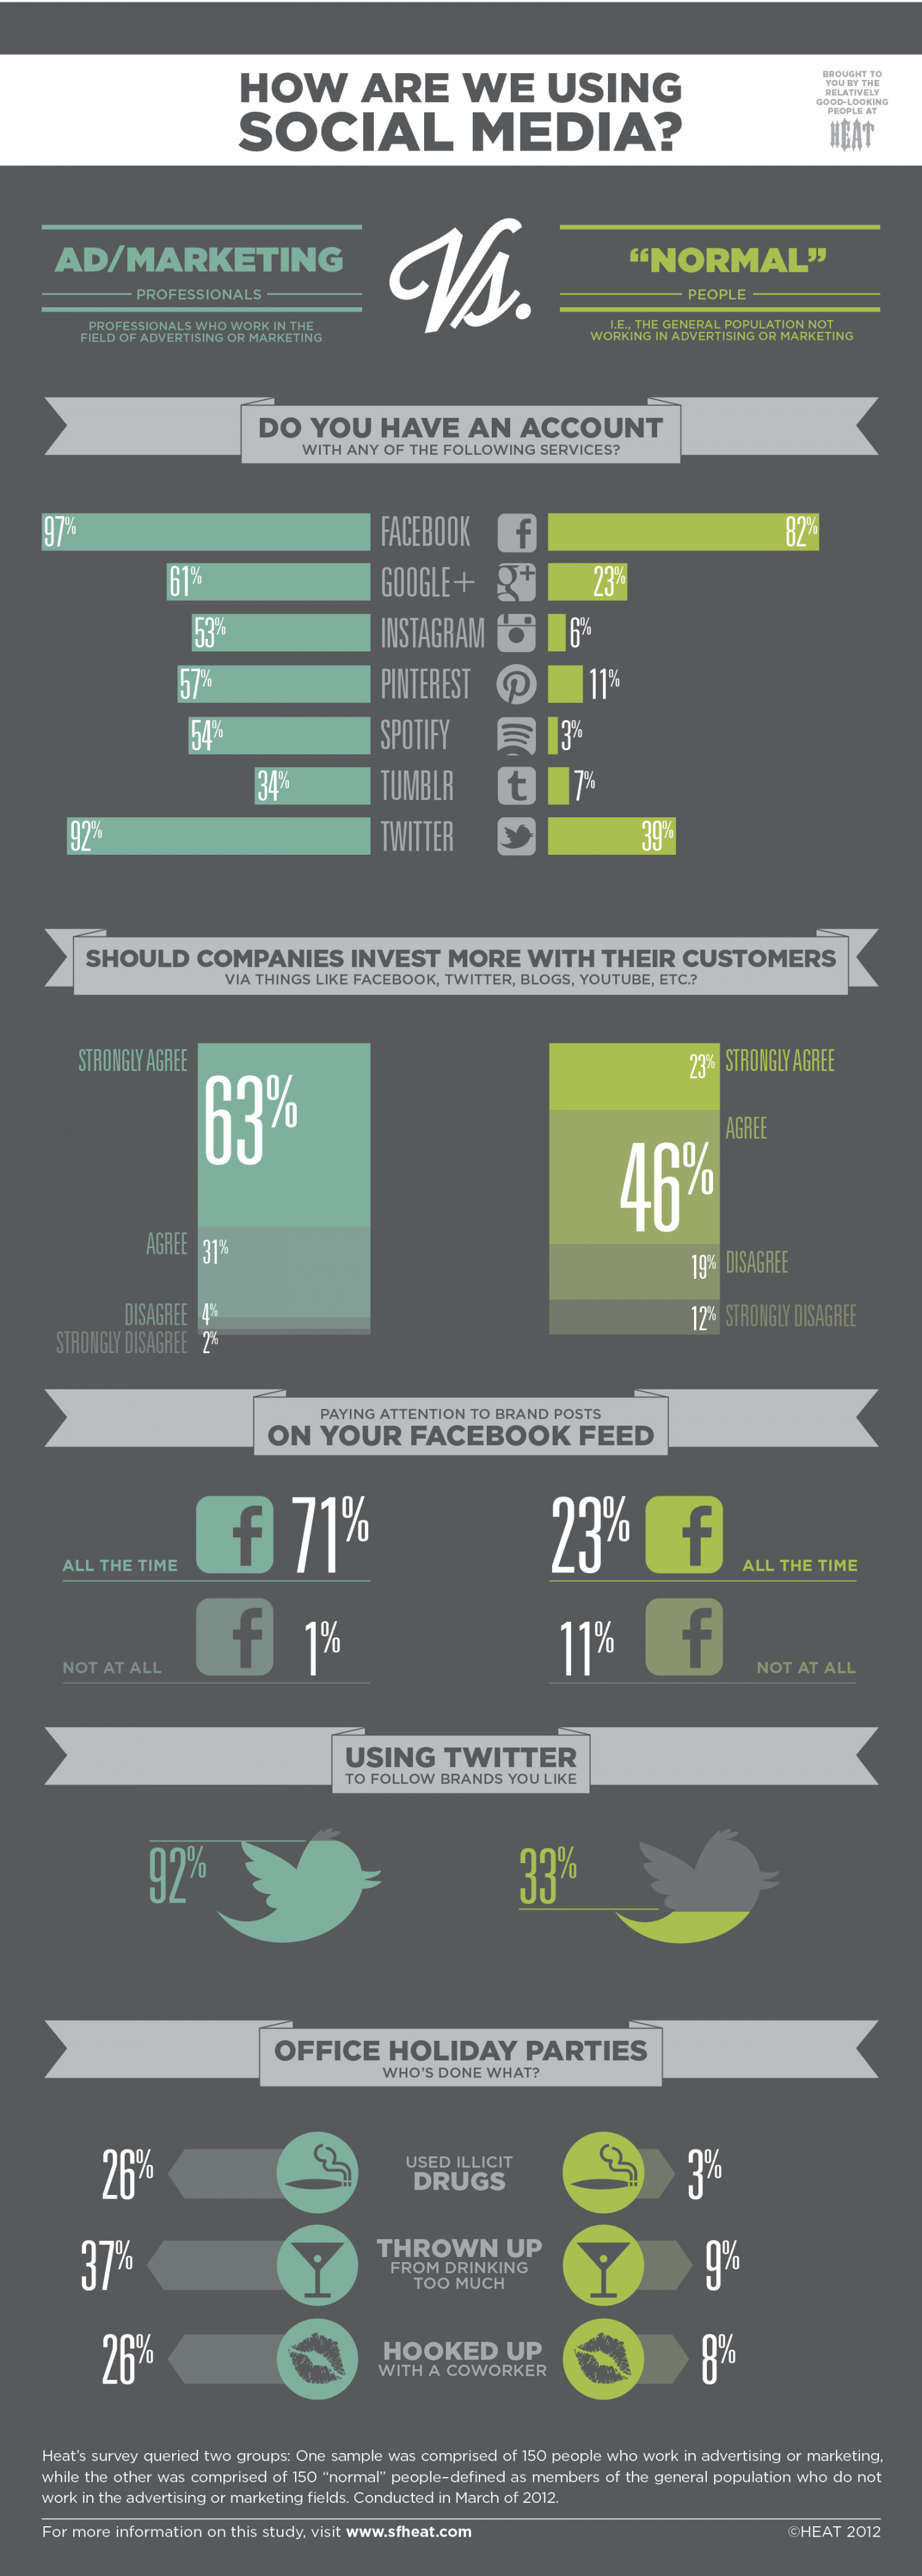 Social Media: Ad/Marketing Professionals vs 'Normal' People Infographic